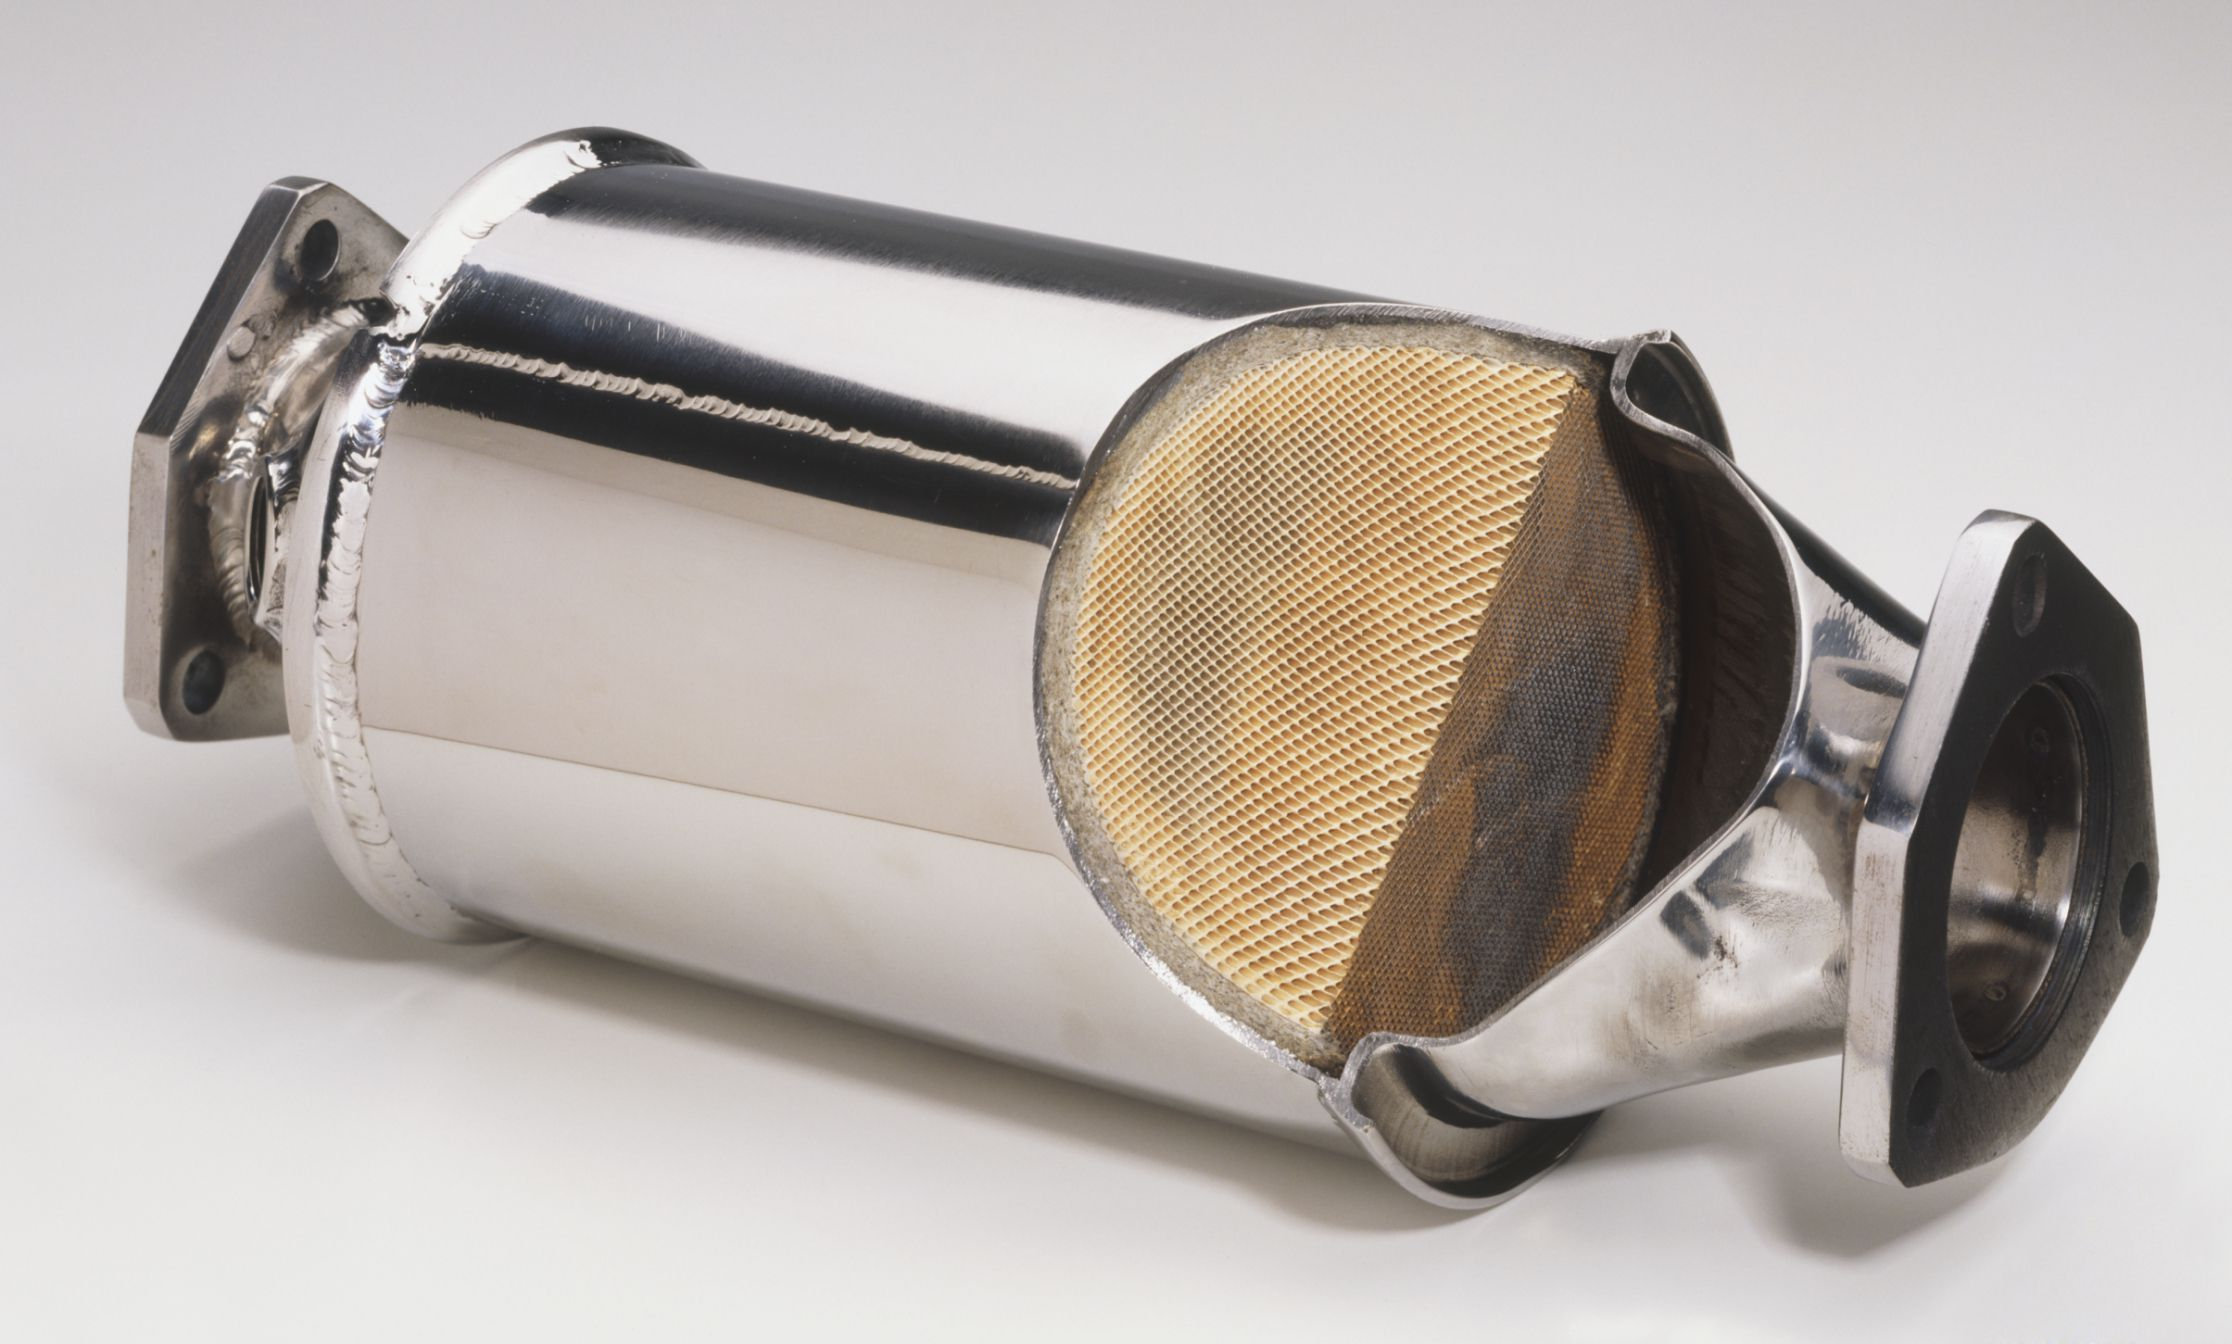 Catalytic Converter Theft Prevention and Claims